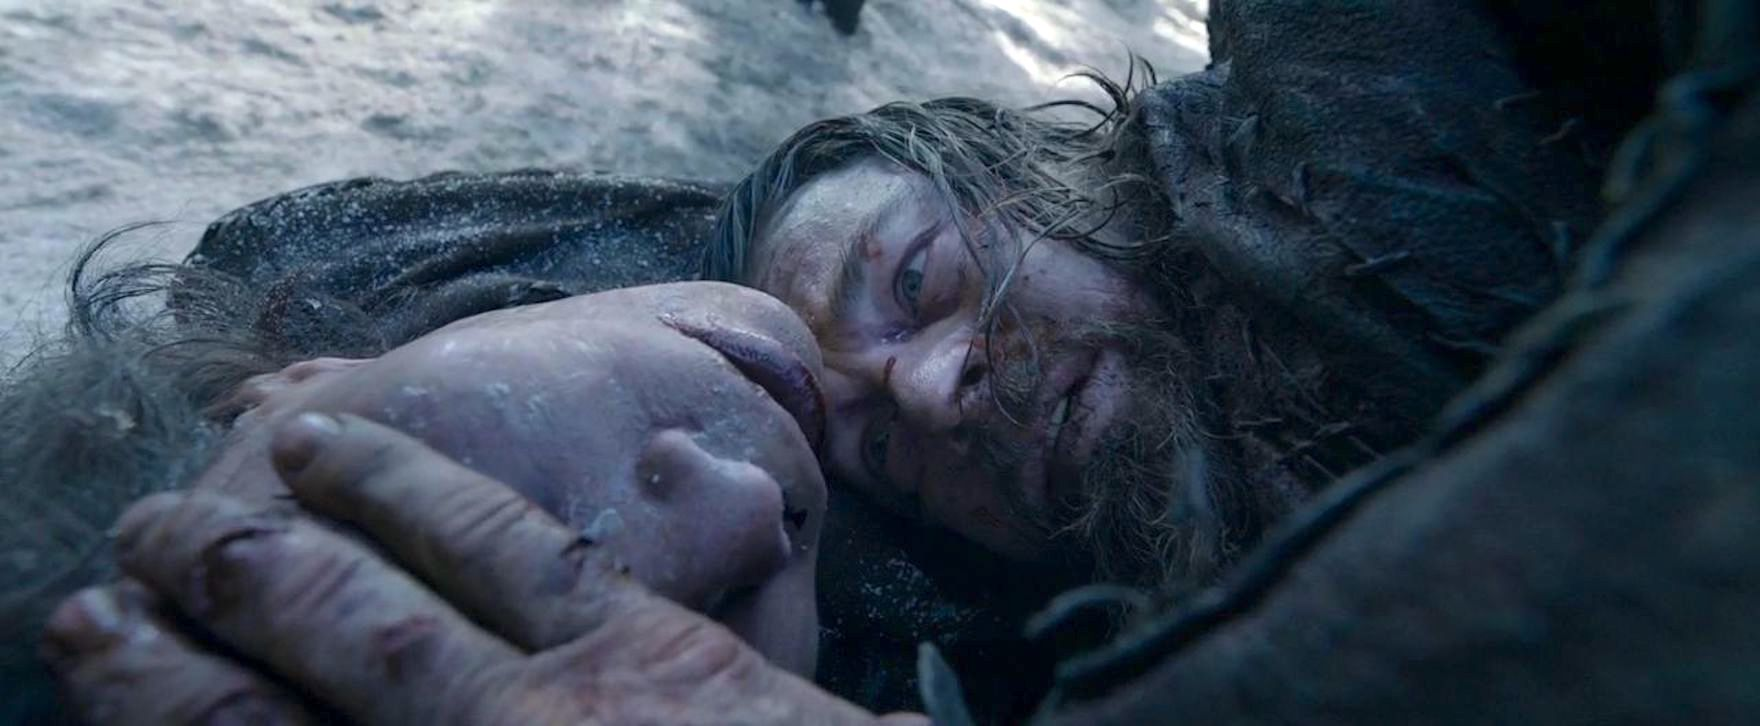 Leonardo DiCaprio and Forrest Goodluck in The Revenant (2015)